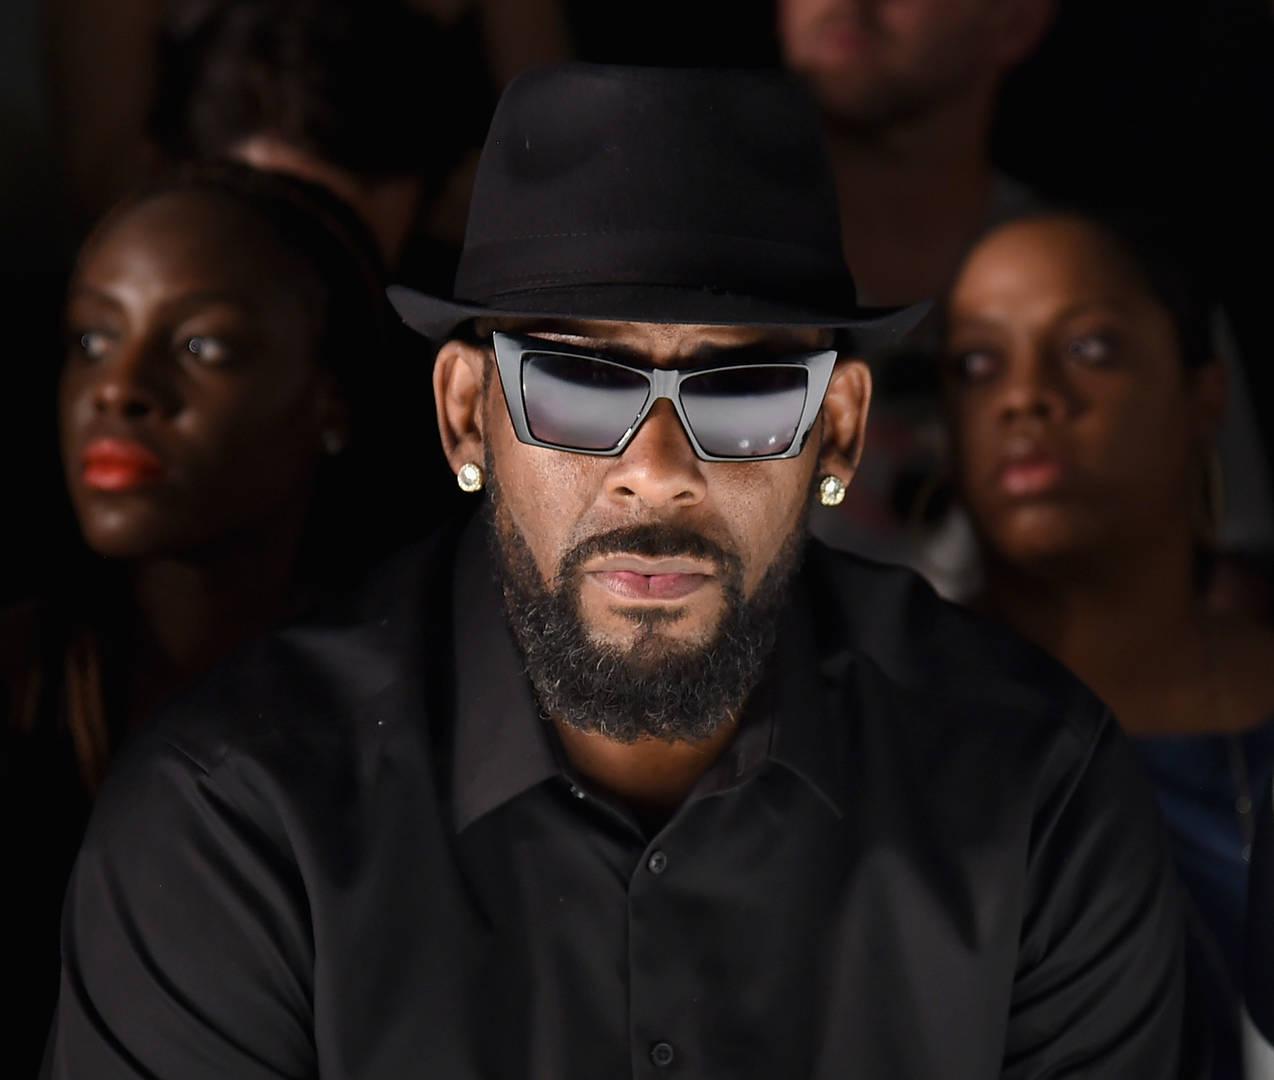 R. Kelly charged with 10 counts of sexual abuse